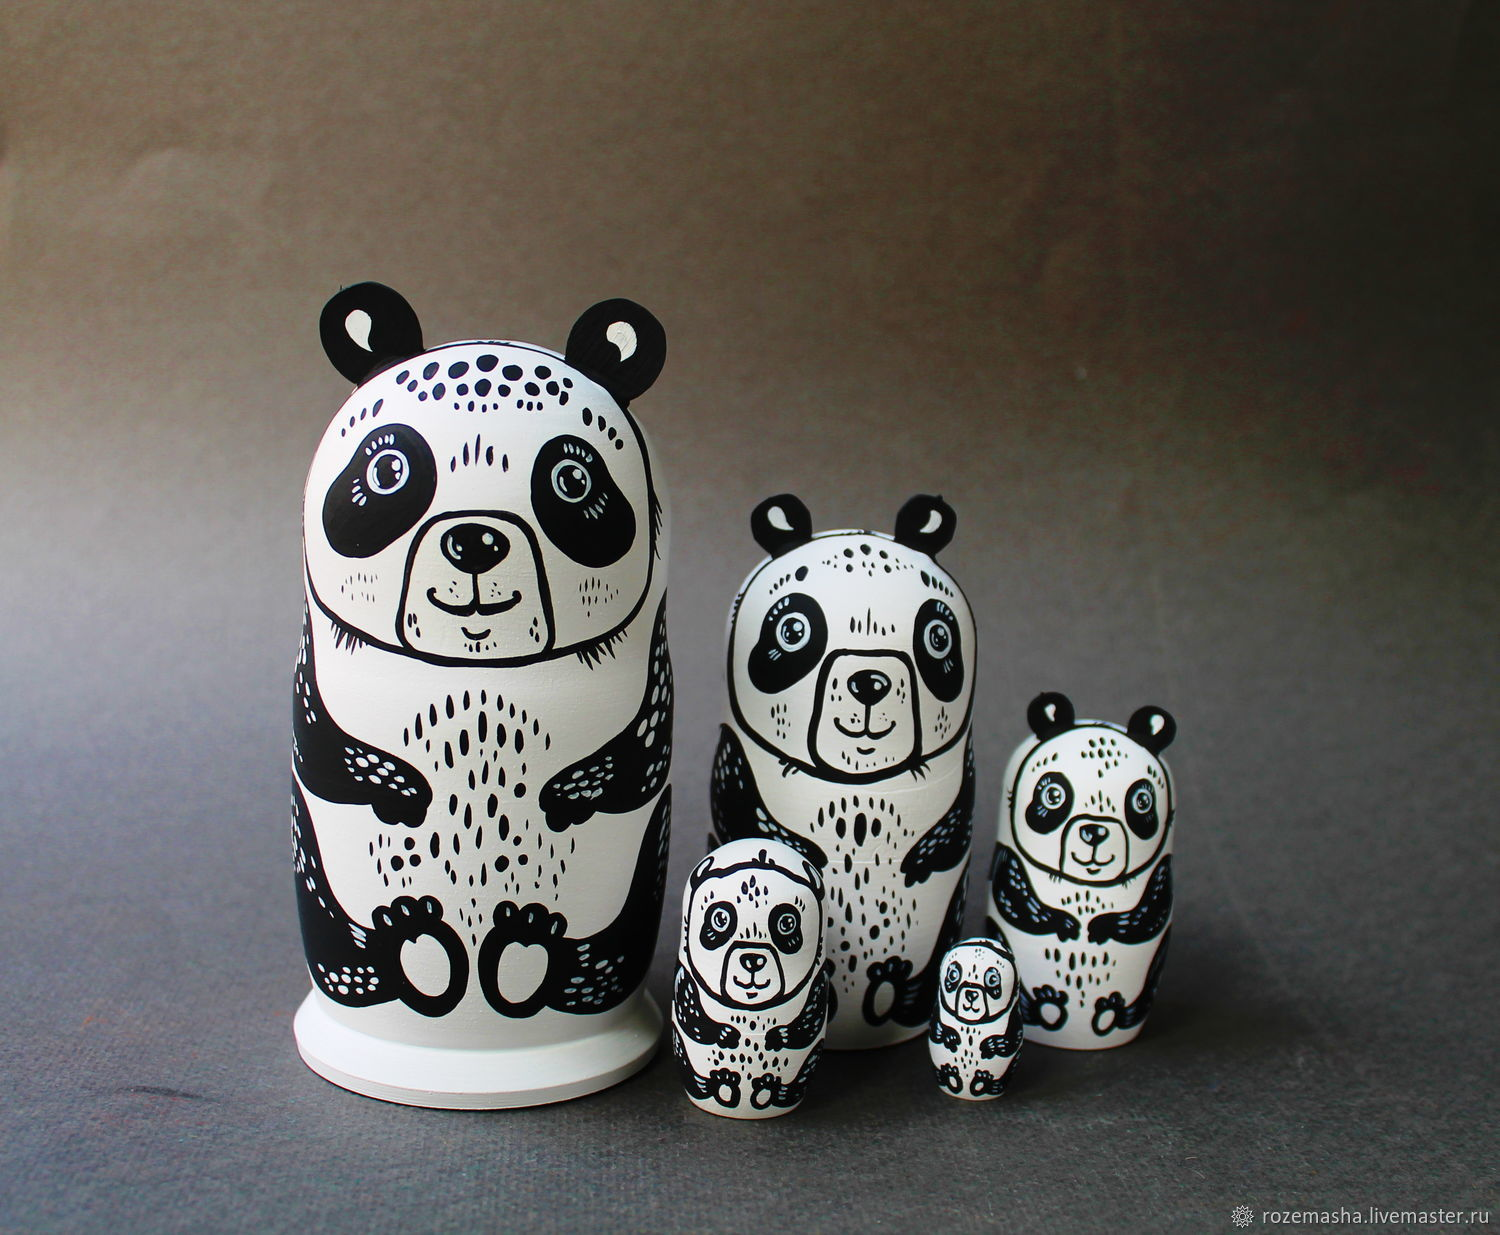 Educational Toy Matryoshka Funny Pandas wooden toy home decor, Puzzle, St. Petersburg,  Фото №1